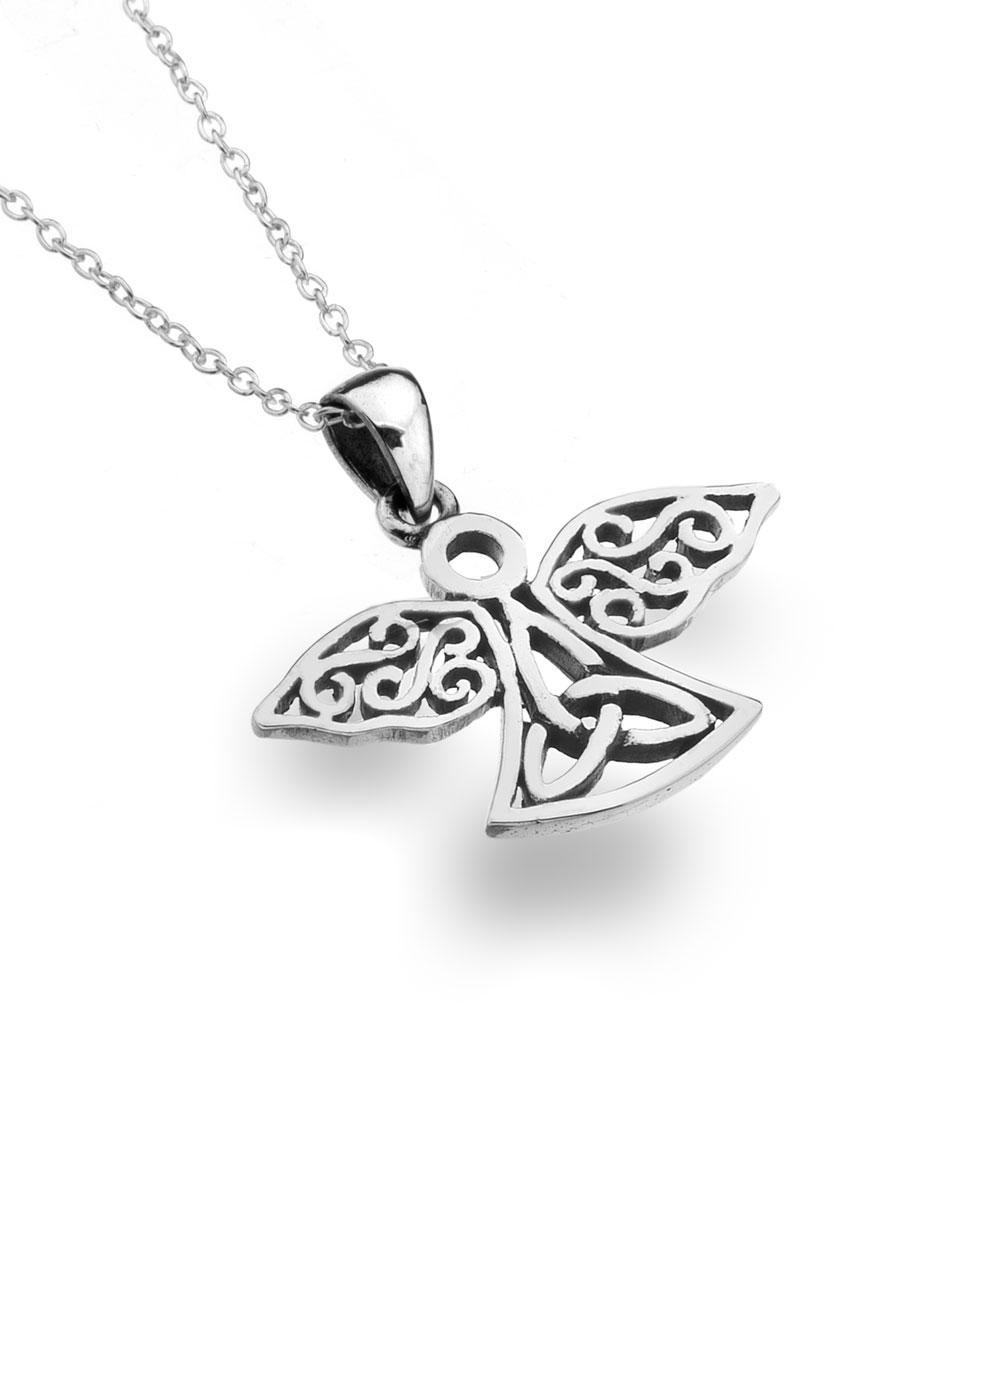 Sterling silver celtic angel pendant blarney sterling silver celtic angel pendant mozeypictures Image collections